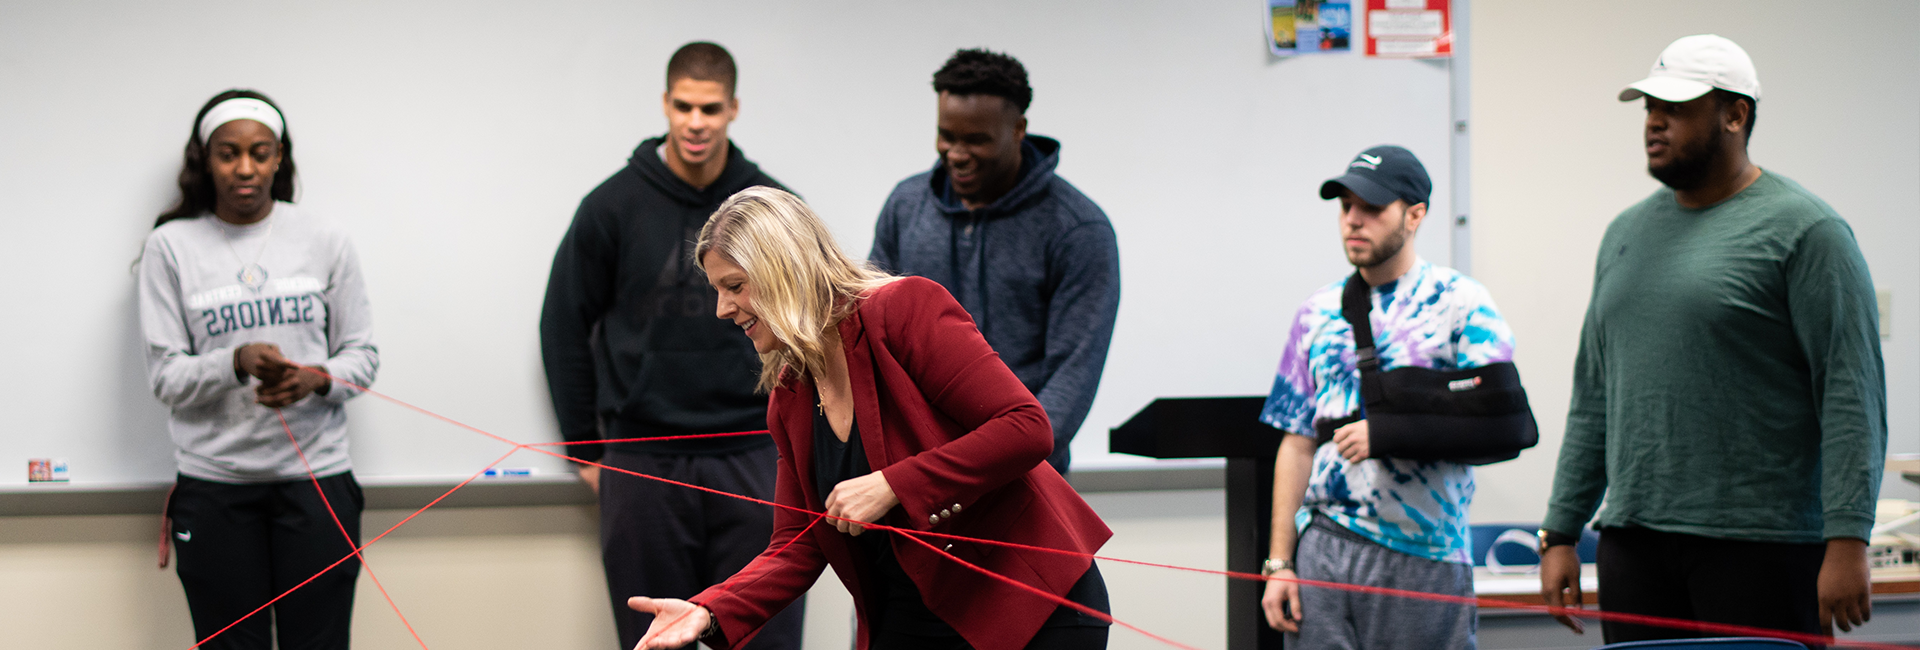 Professor working with string to give a management lesson with 5 students watching her